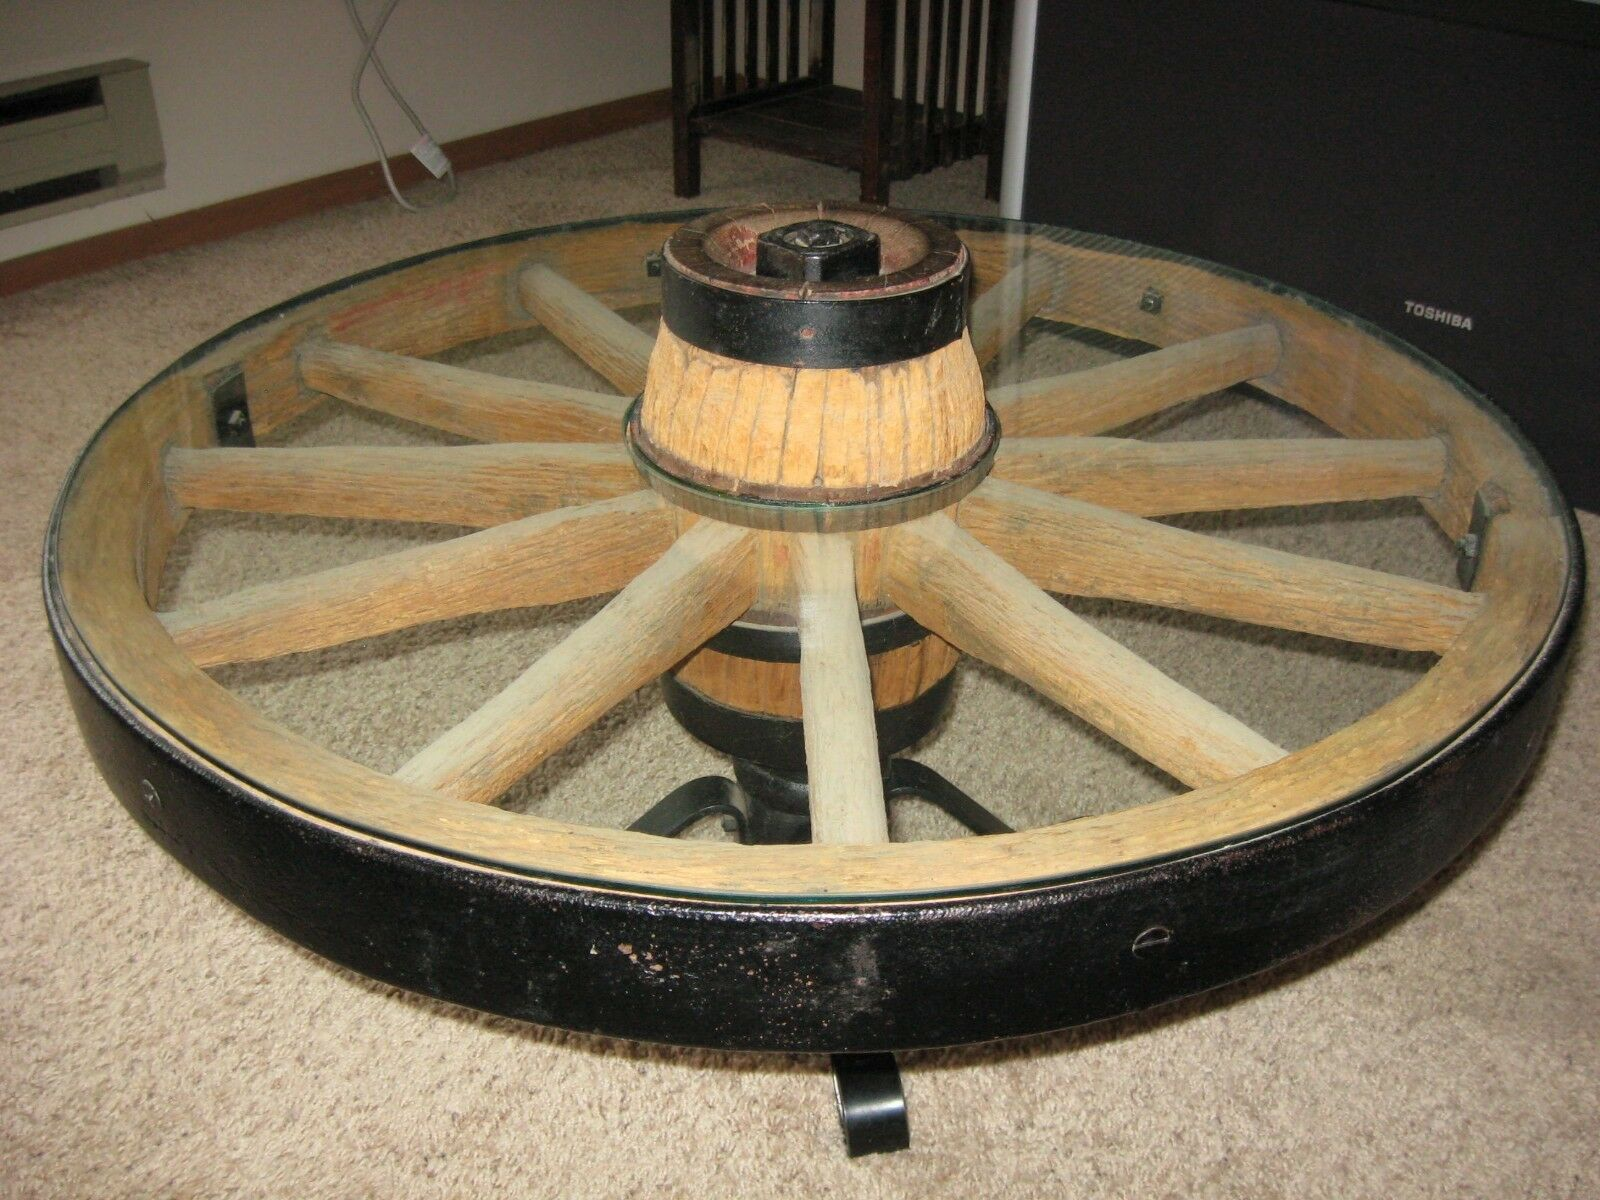 Antique Wagon Wheel Coffee Table 1 Of 6 ...